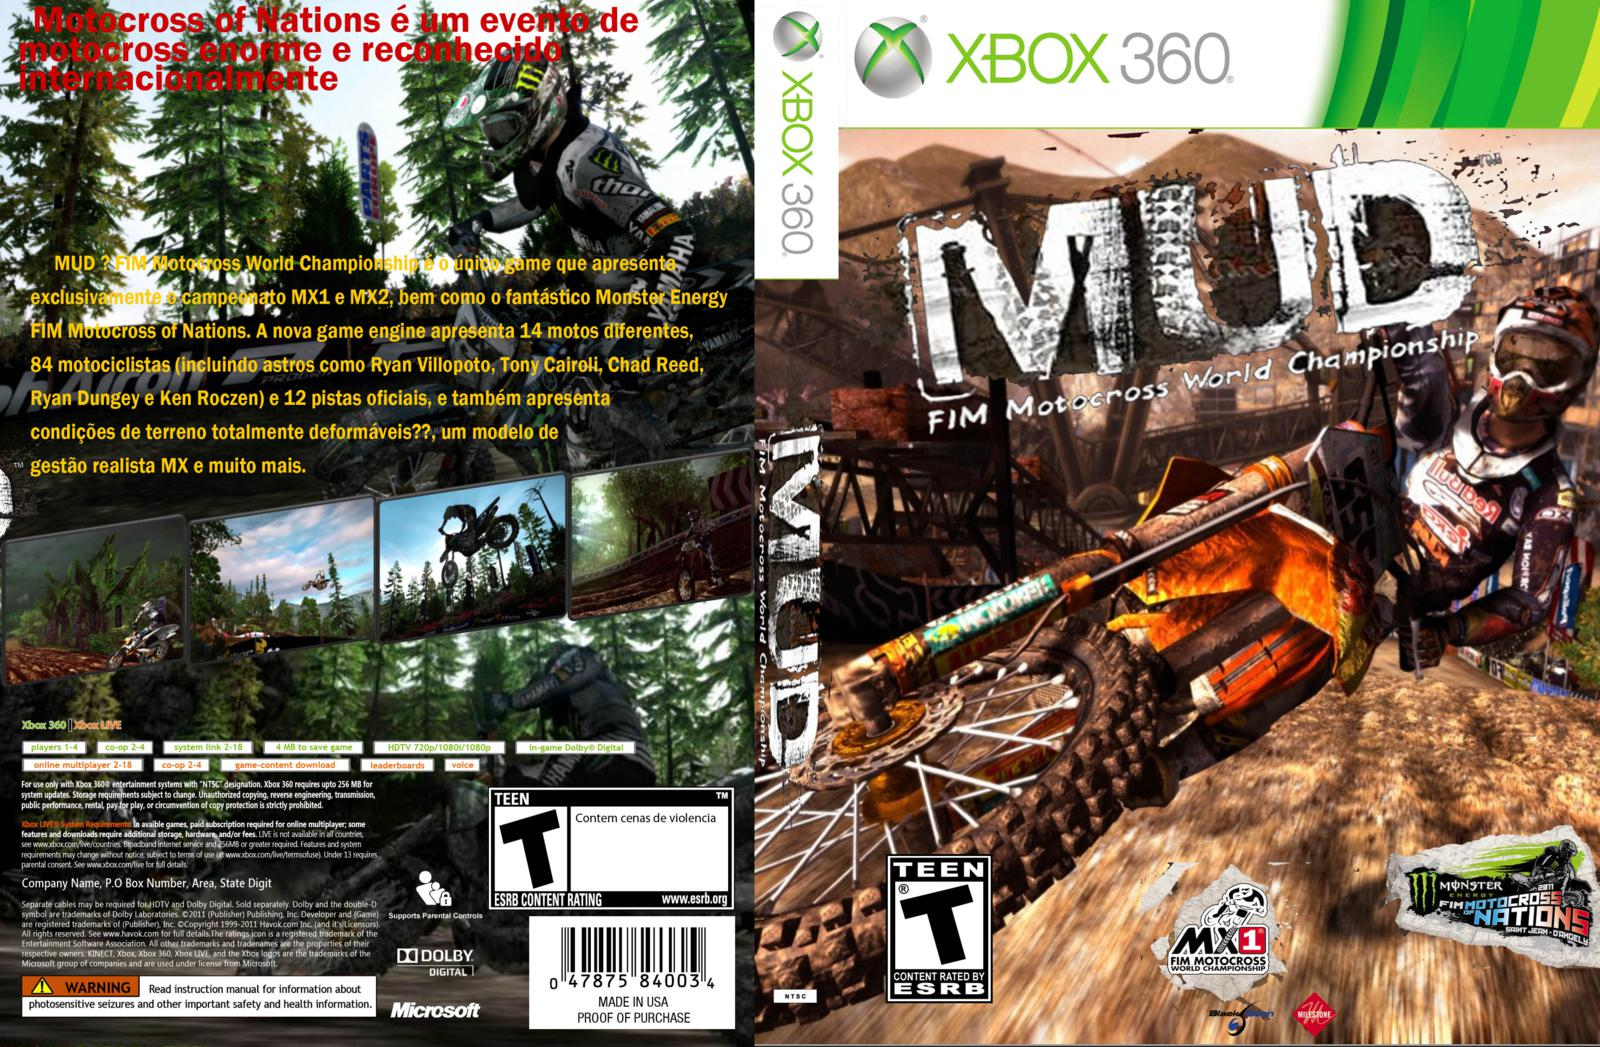 Amazon.com: MUD - FIM Motocross World Championship - Xbox 360 ...